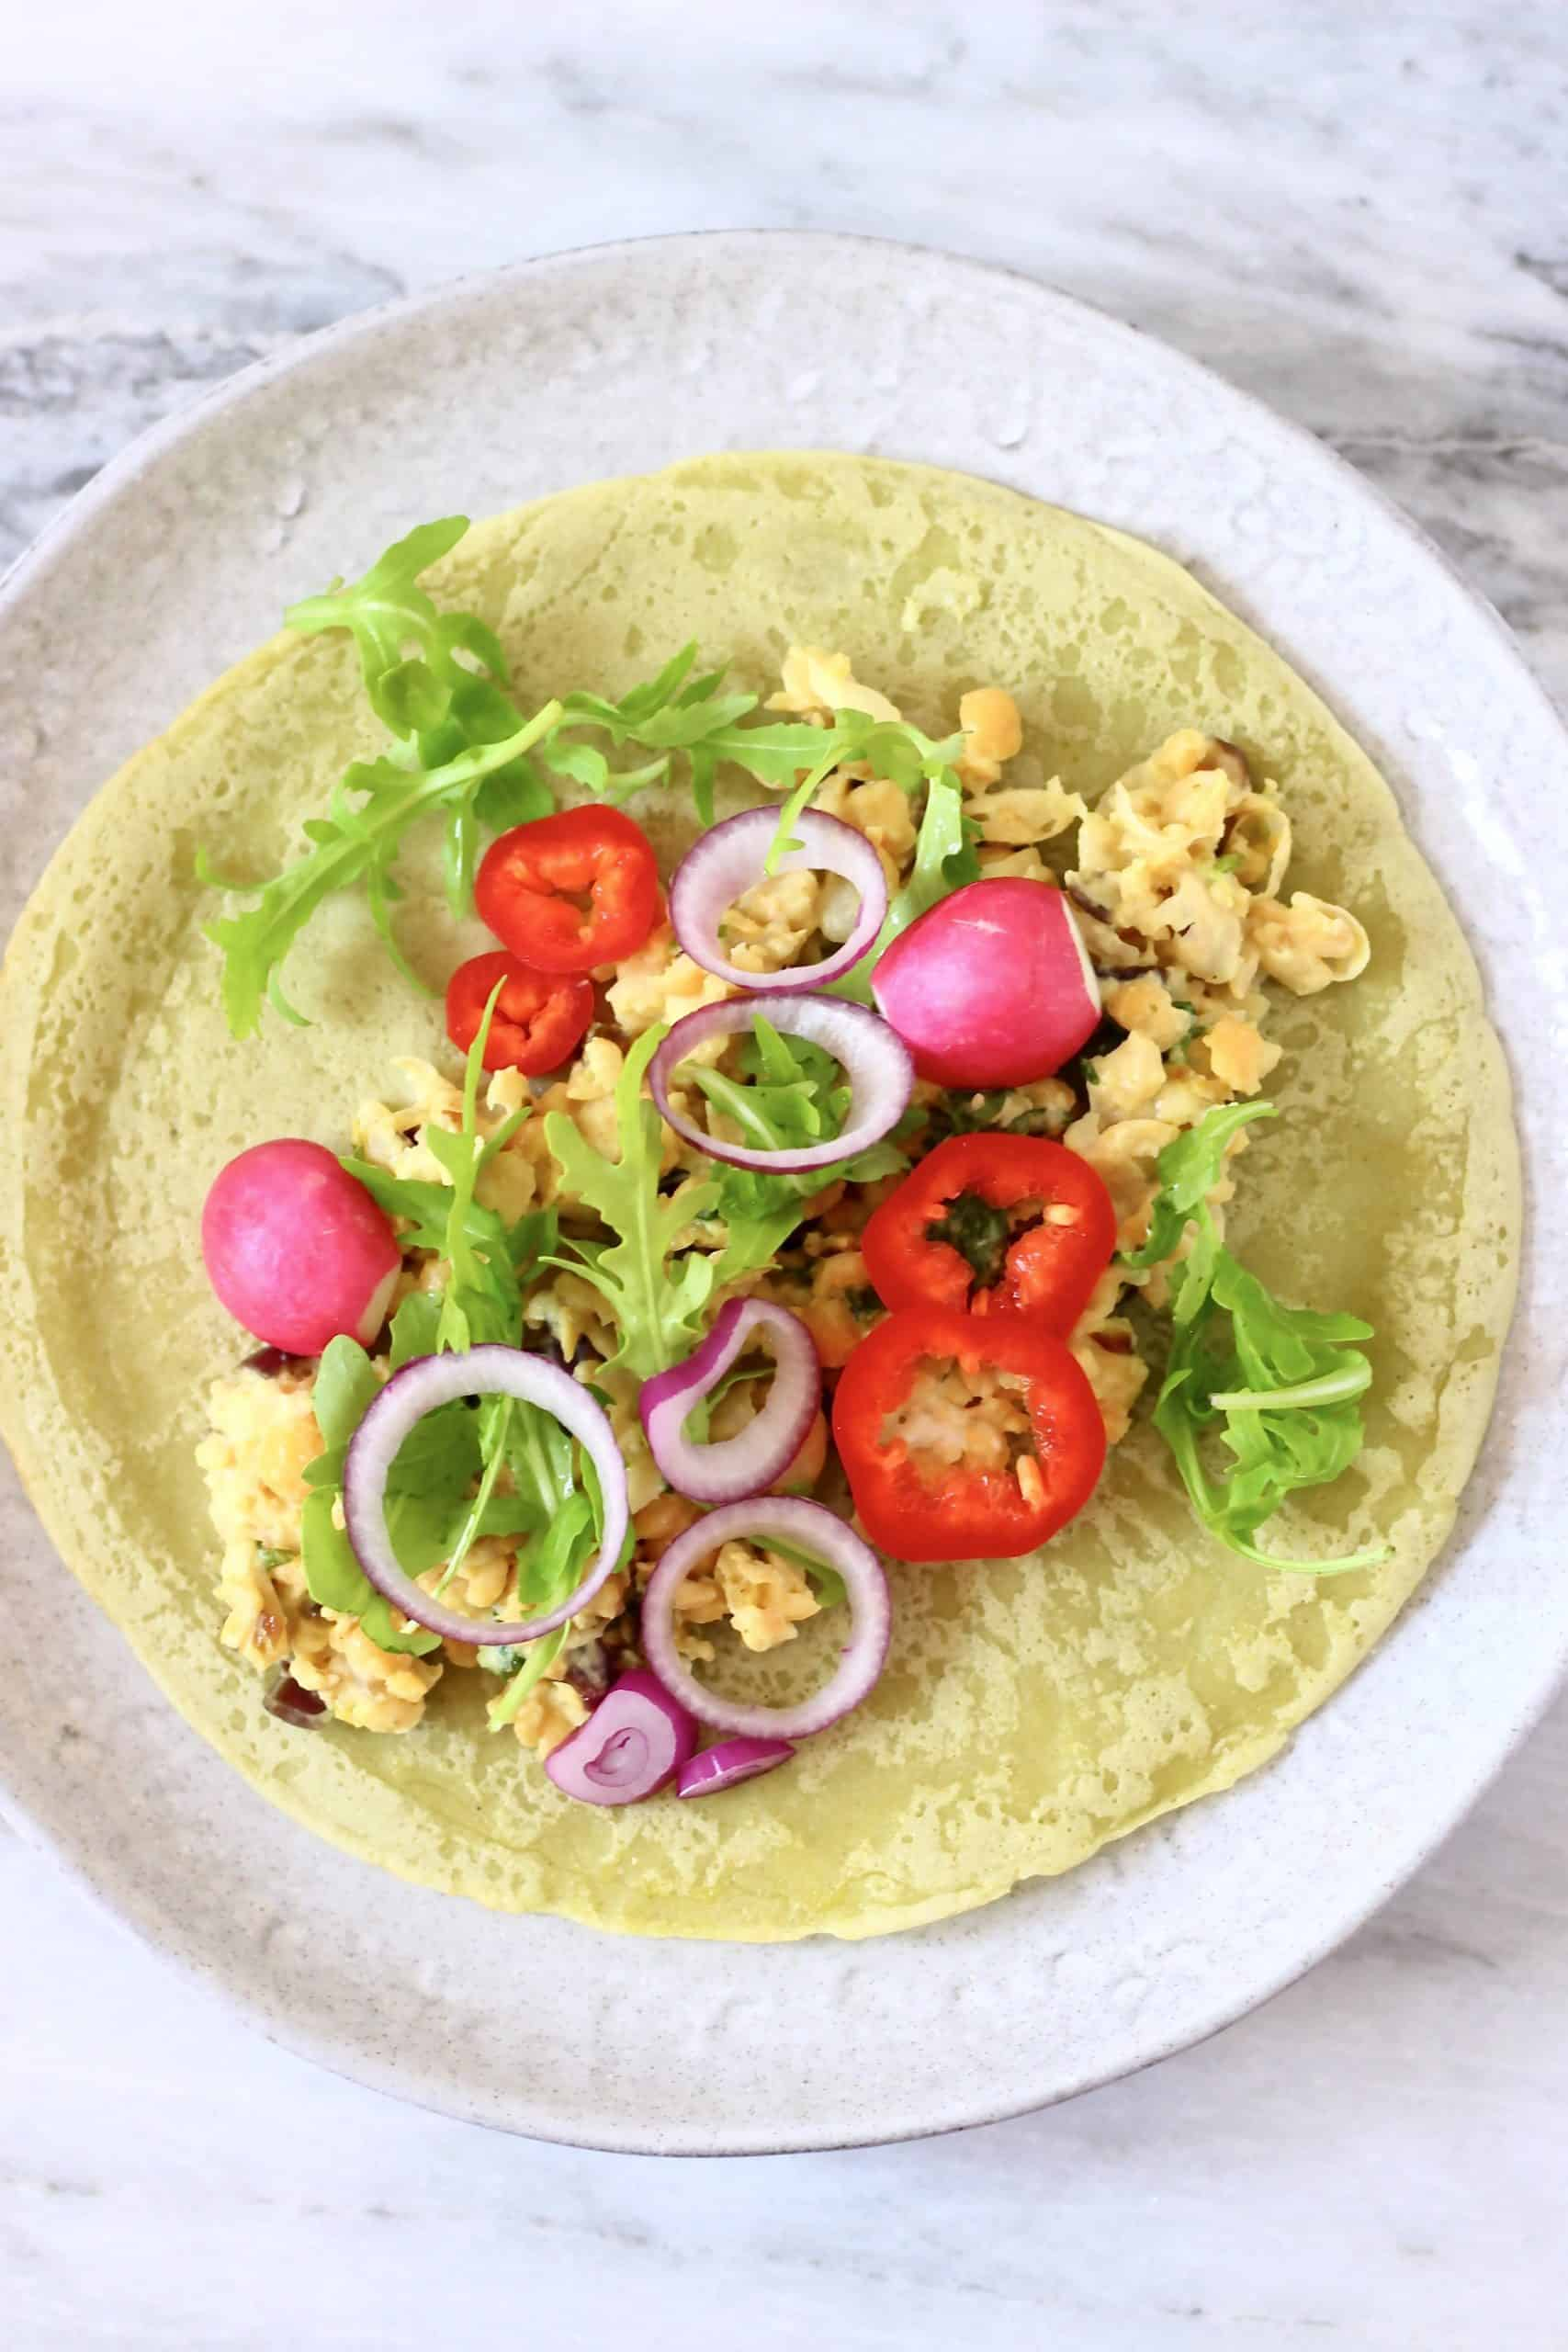 A green gluten-free vegan wrap topped with beans and salad on a white plate